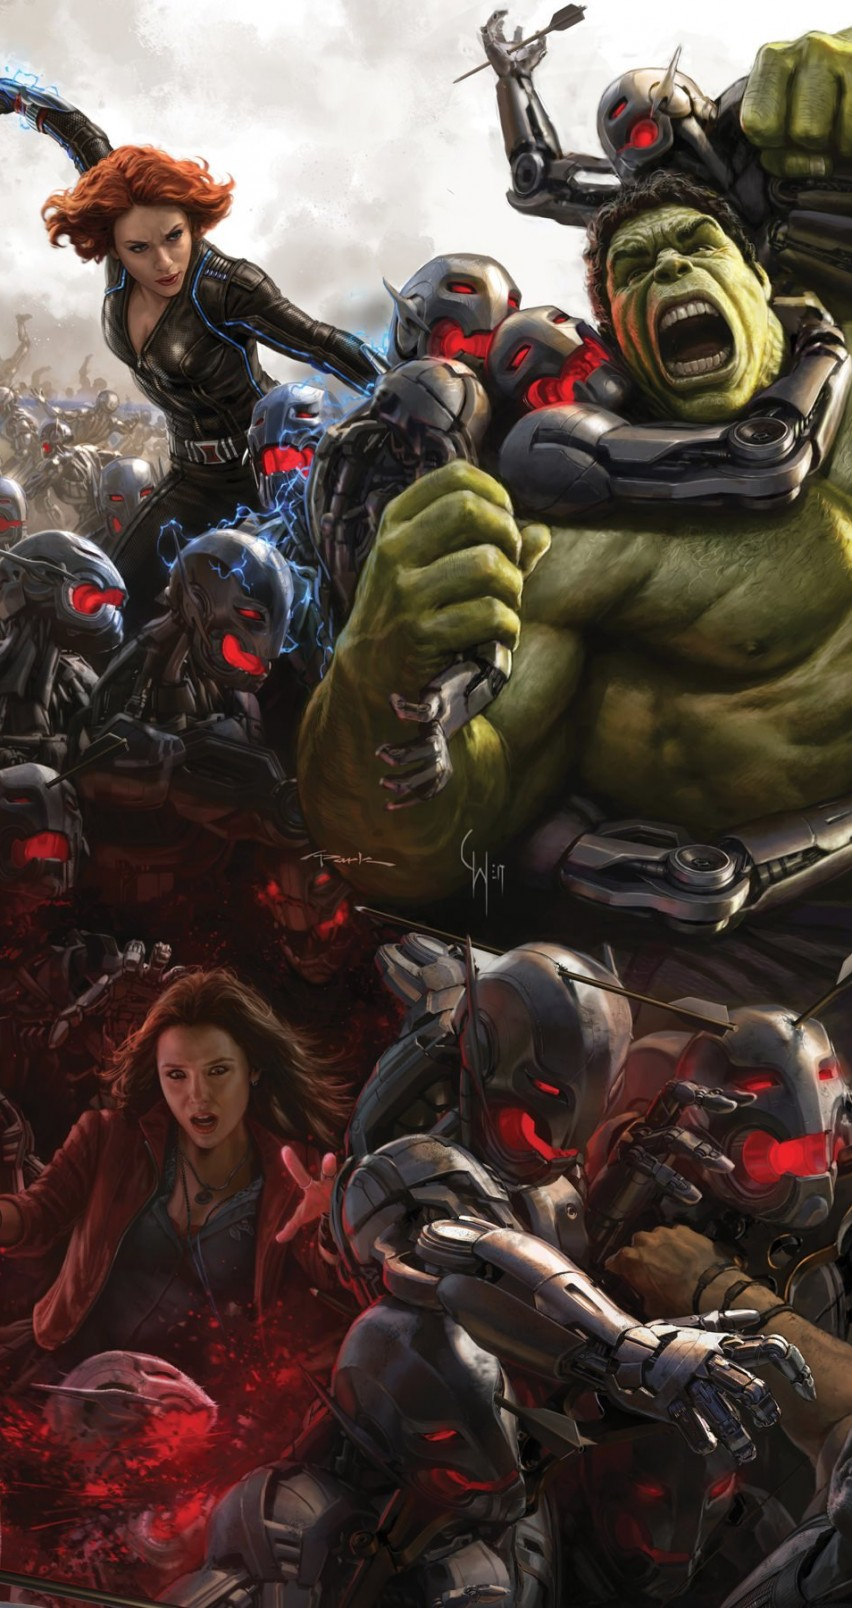 Avengers Age Of Ultron Concept Art Wallpaper for Apple iPhone 6 / 6s